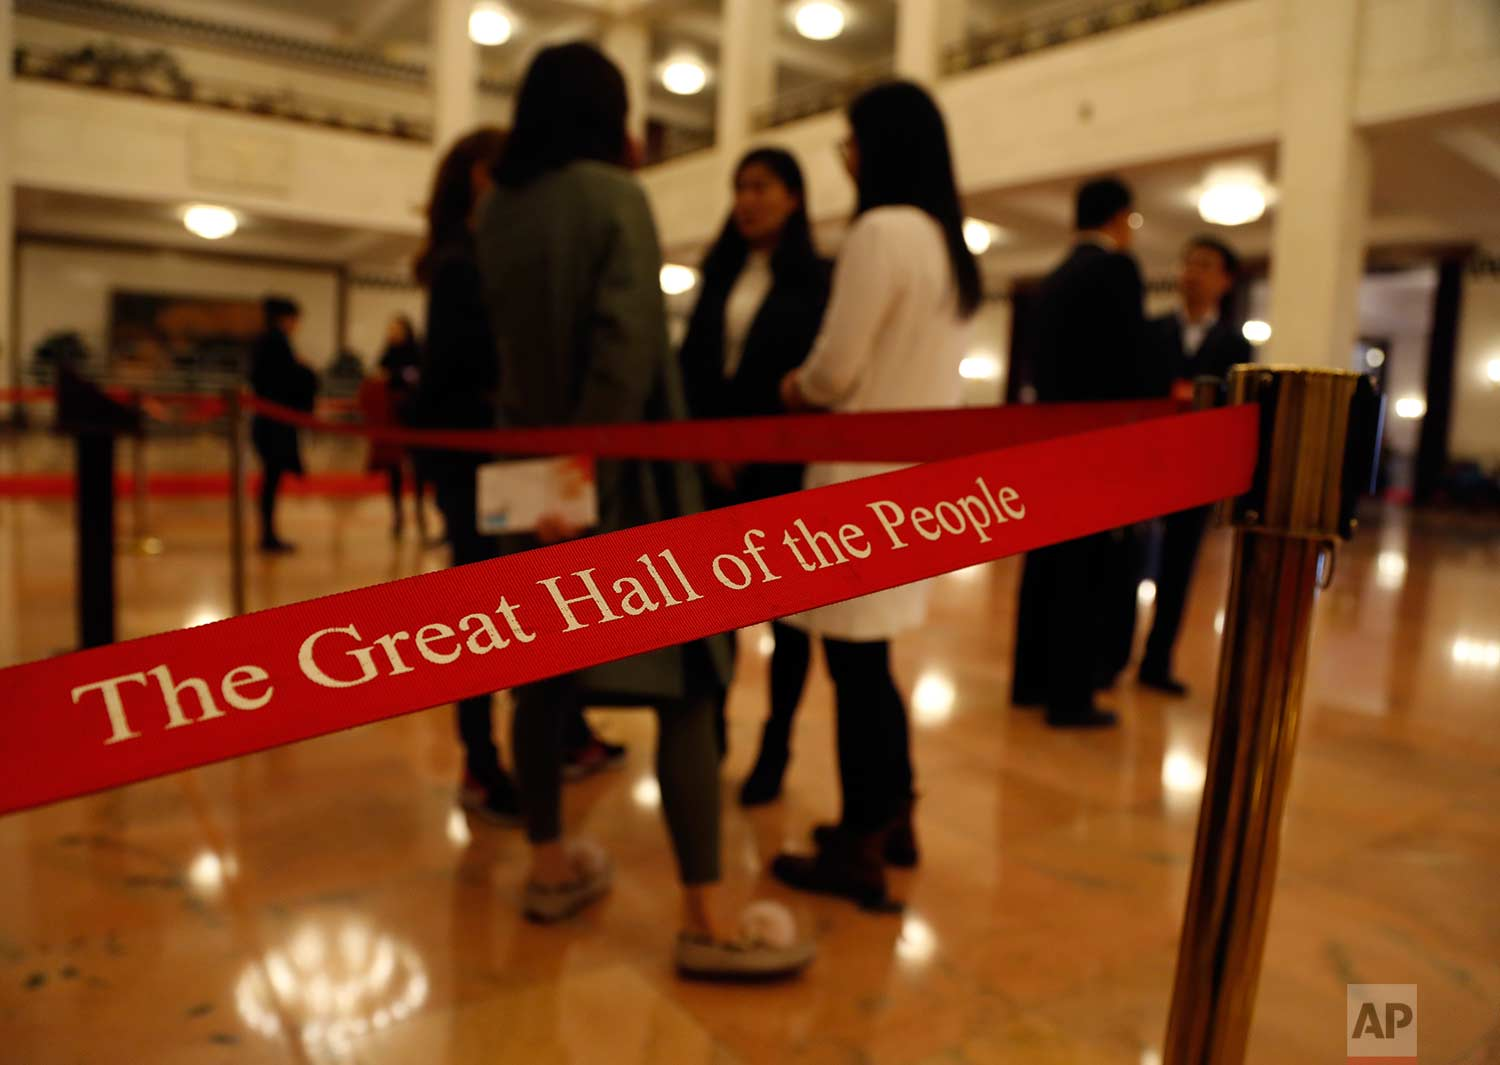 In this Wednesday, March 14, 2018 photo, officials and others stand next to a red rope line that reads 'The Great Hall of China' during a plenary session of Chinese People's Political Consultative Conference (CPPCC) at the Great Hall of the People in Beijing. (AP Photo/Aijaz Rahi)